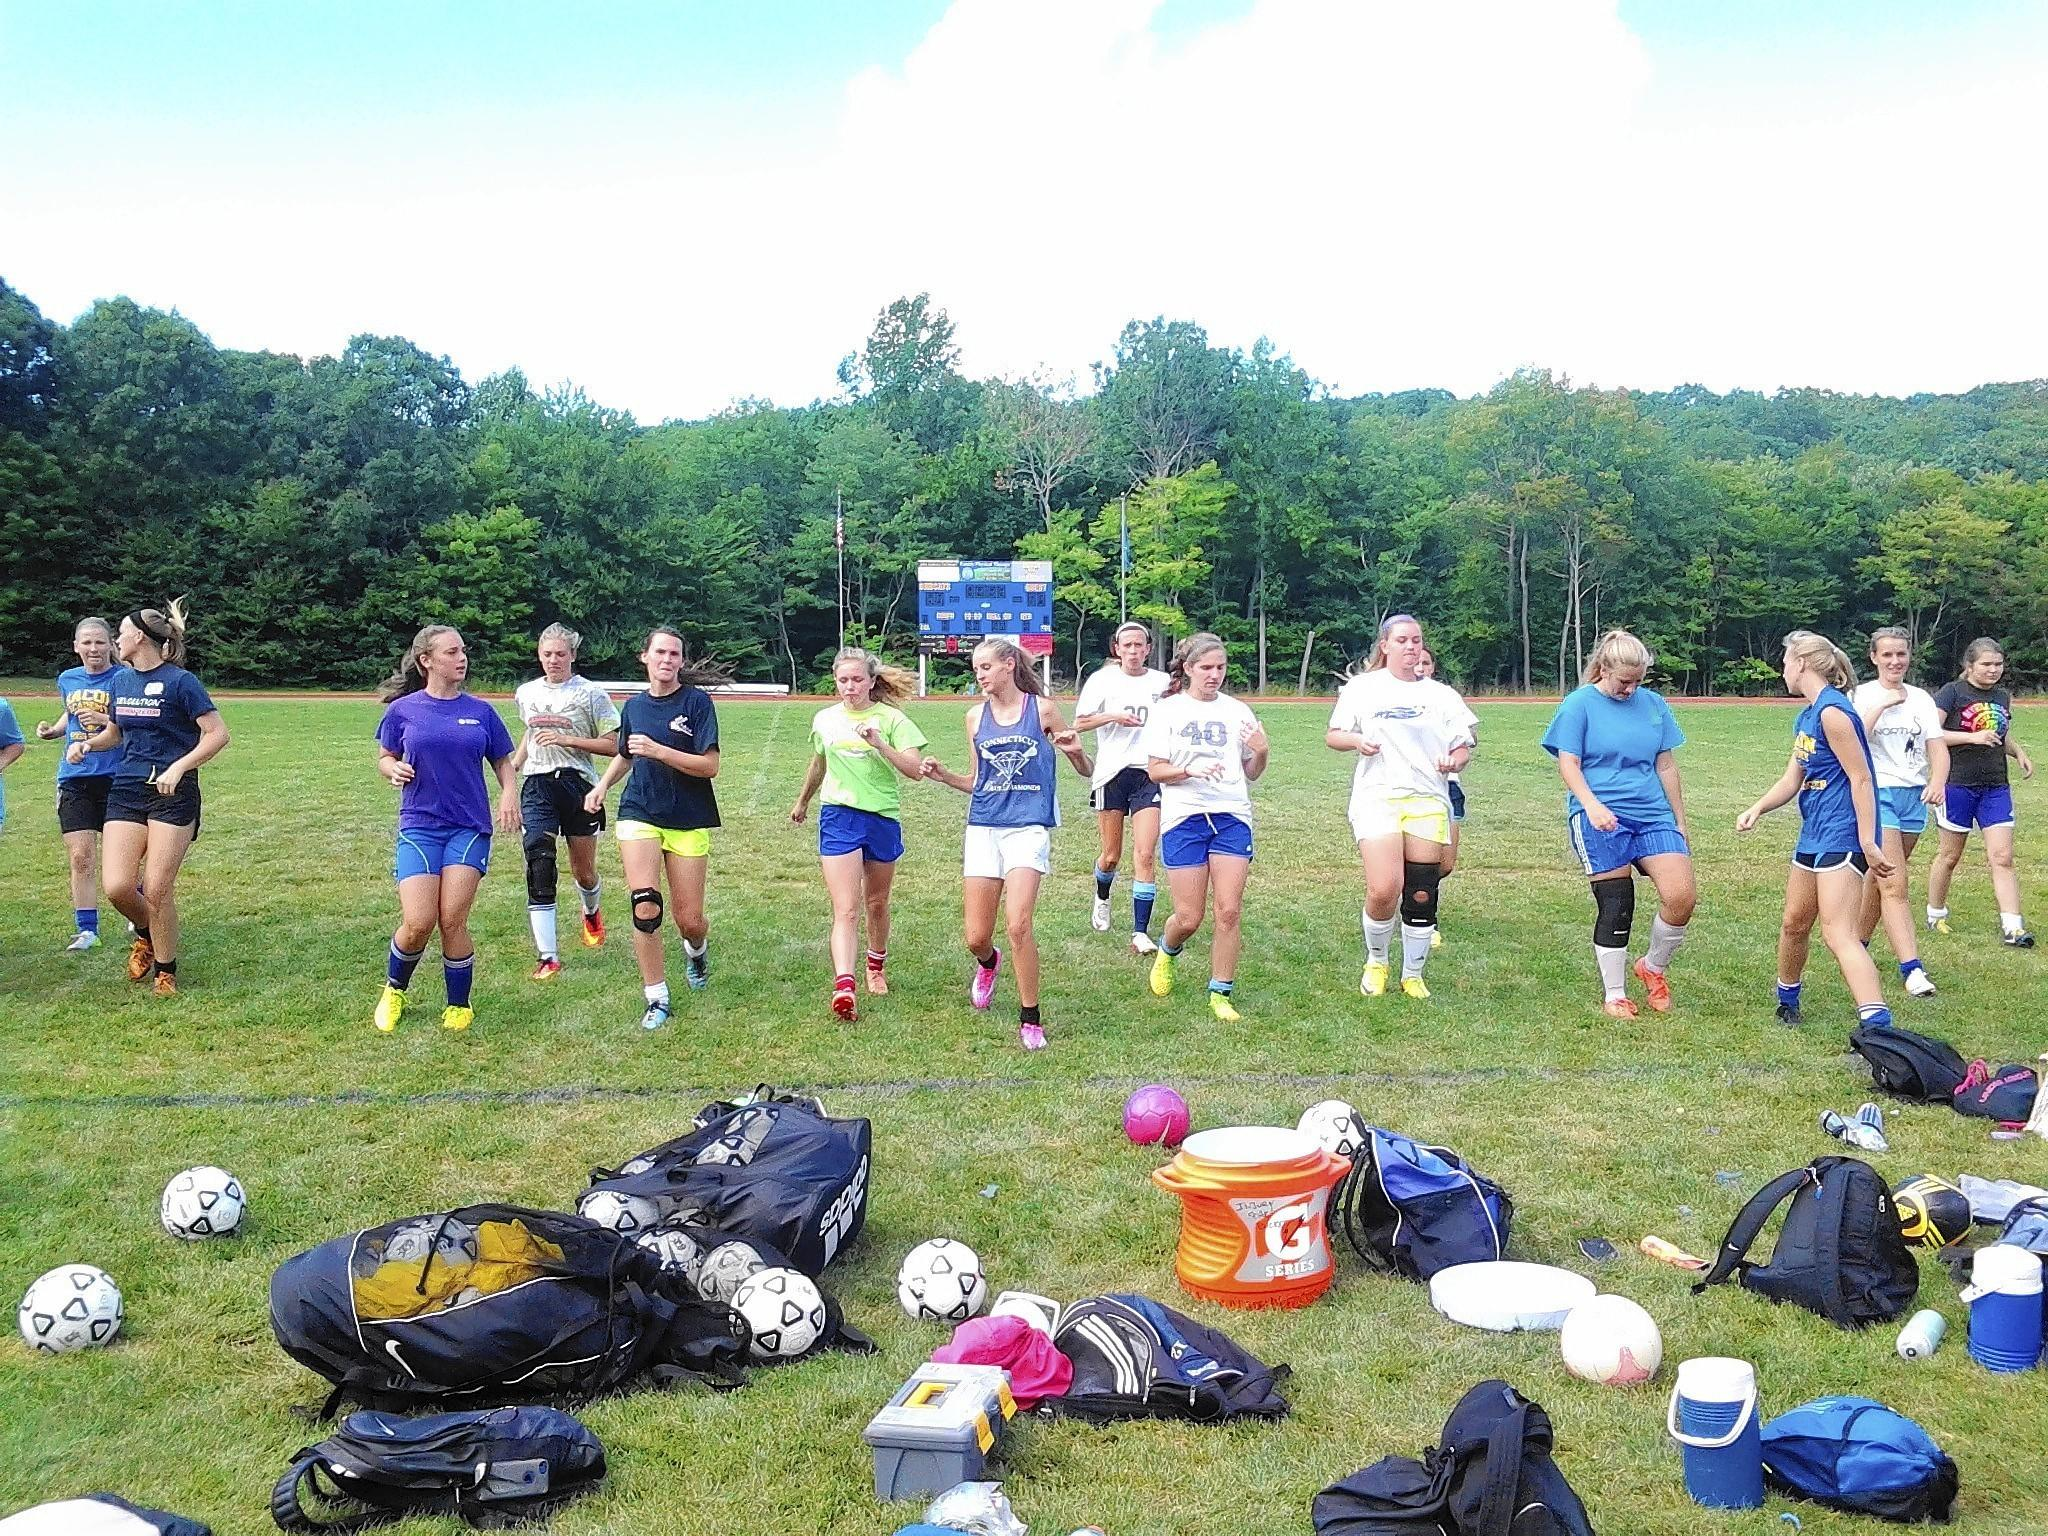 The Bacon Academy girls' soccer teams worked out and ran drills last week, to prepare for the start of the season on Sept. 12. Photo by Merja H. Lehtinen.